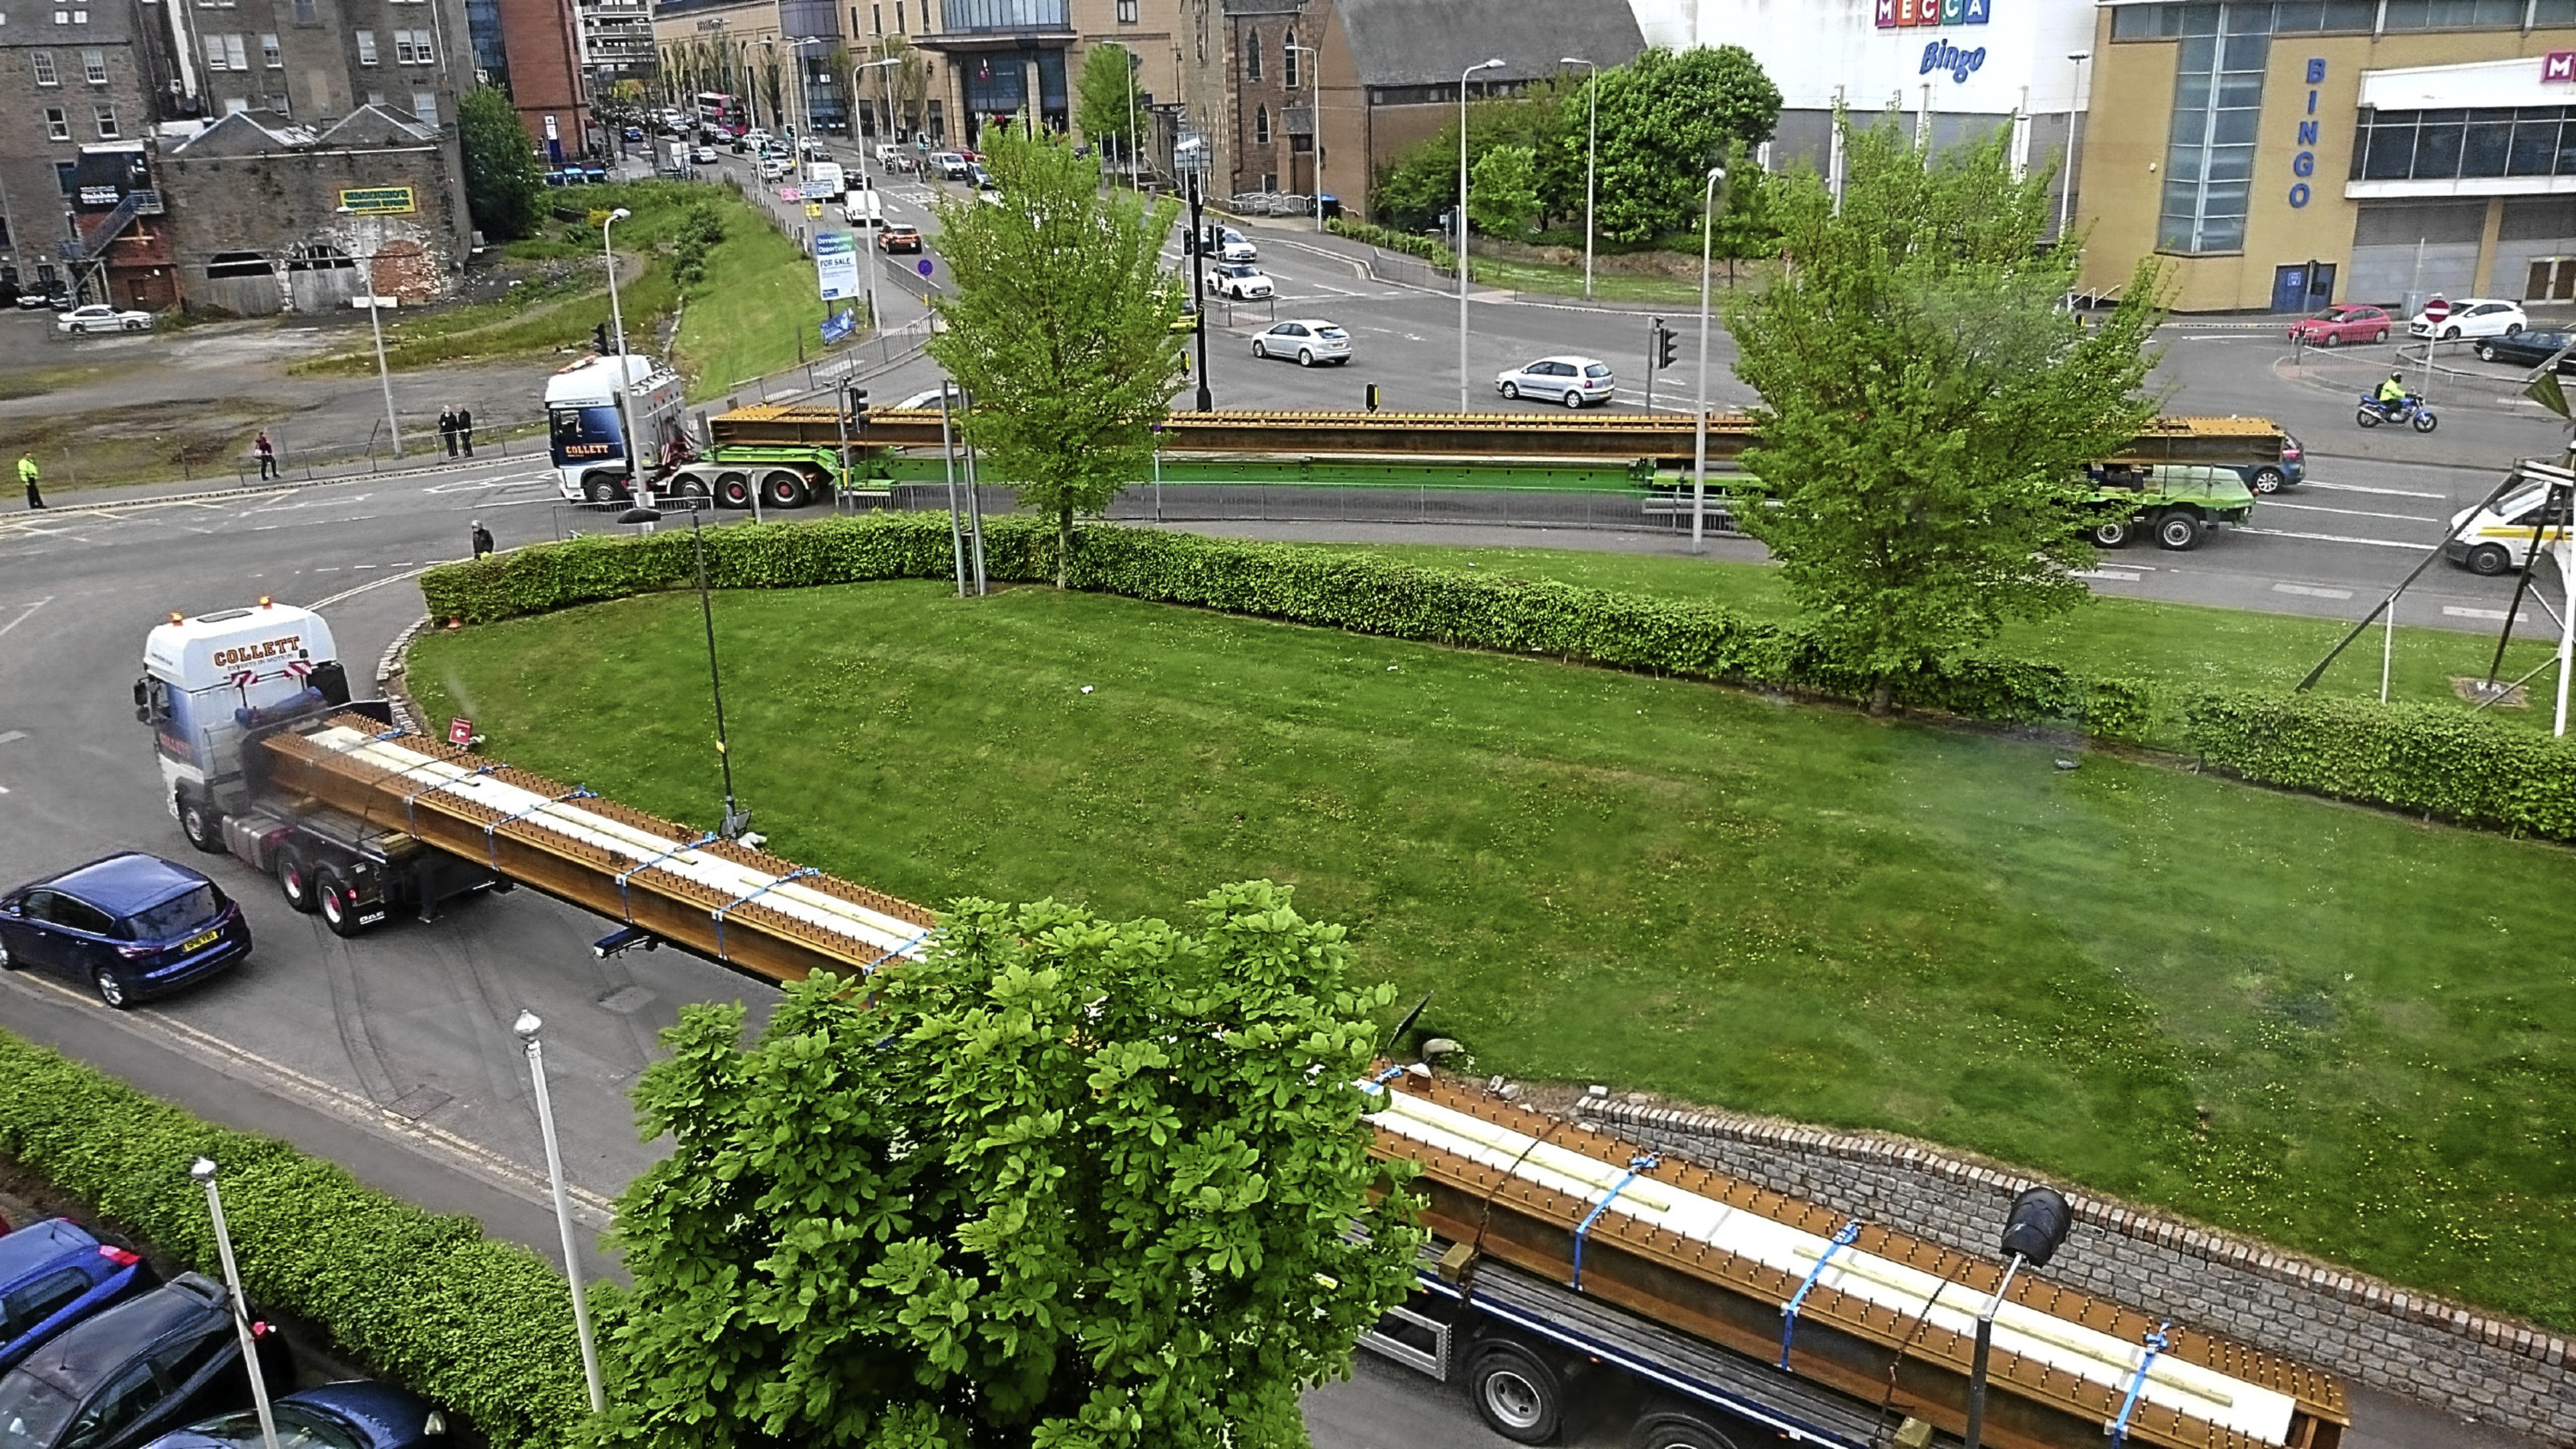 The support beams being delivered to Dundee station earlier this week. Picture by Jimmy Strathearn